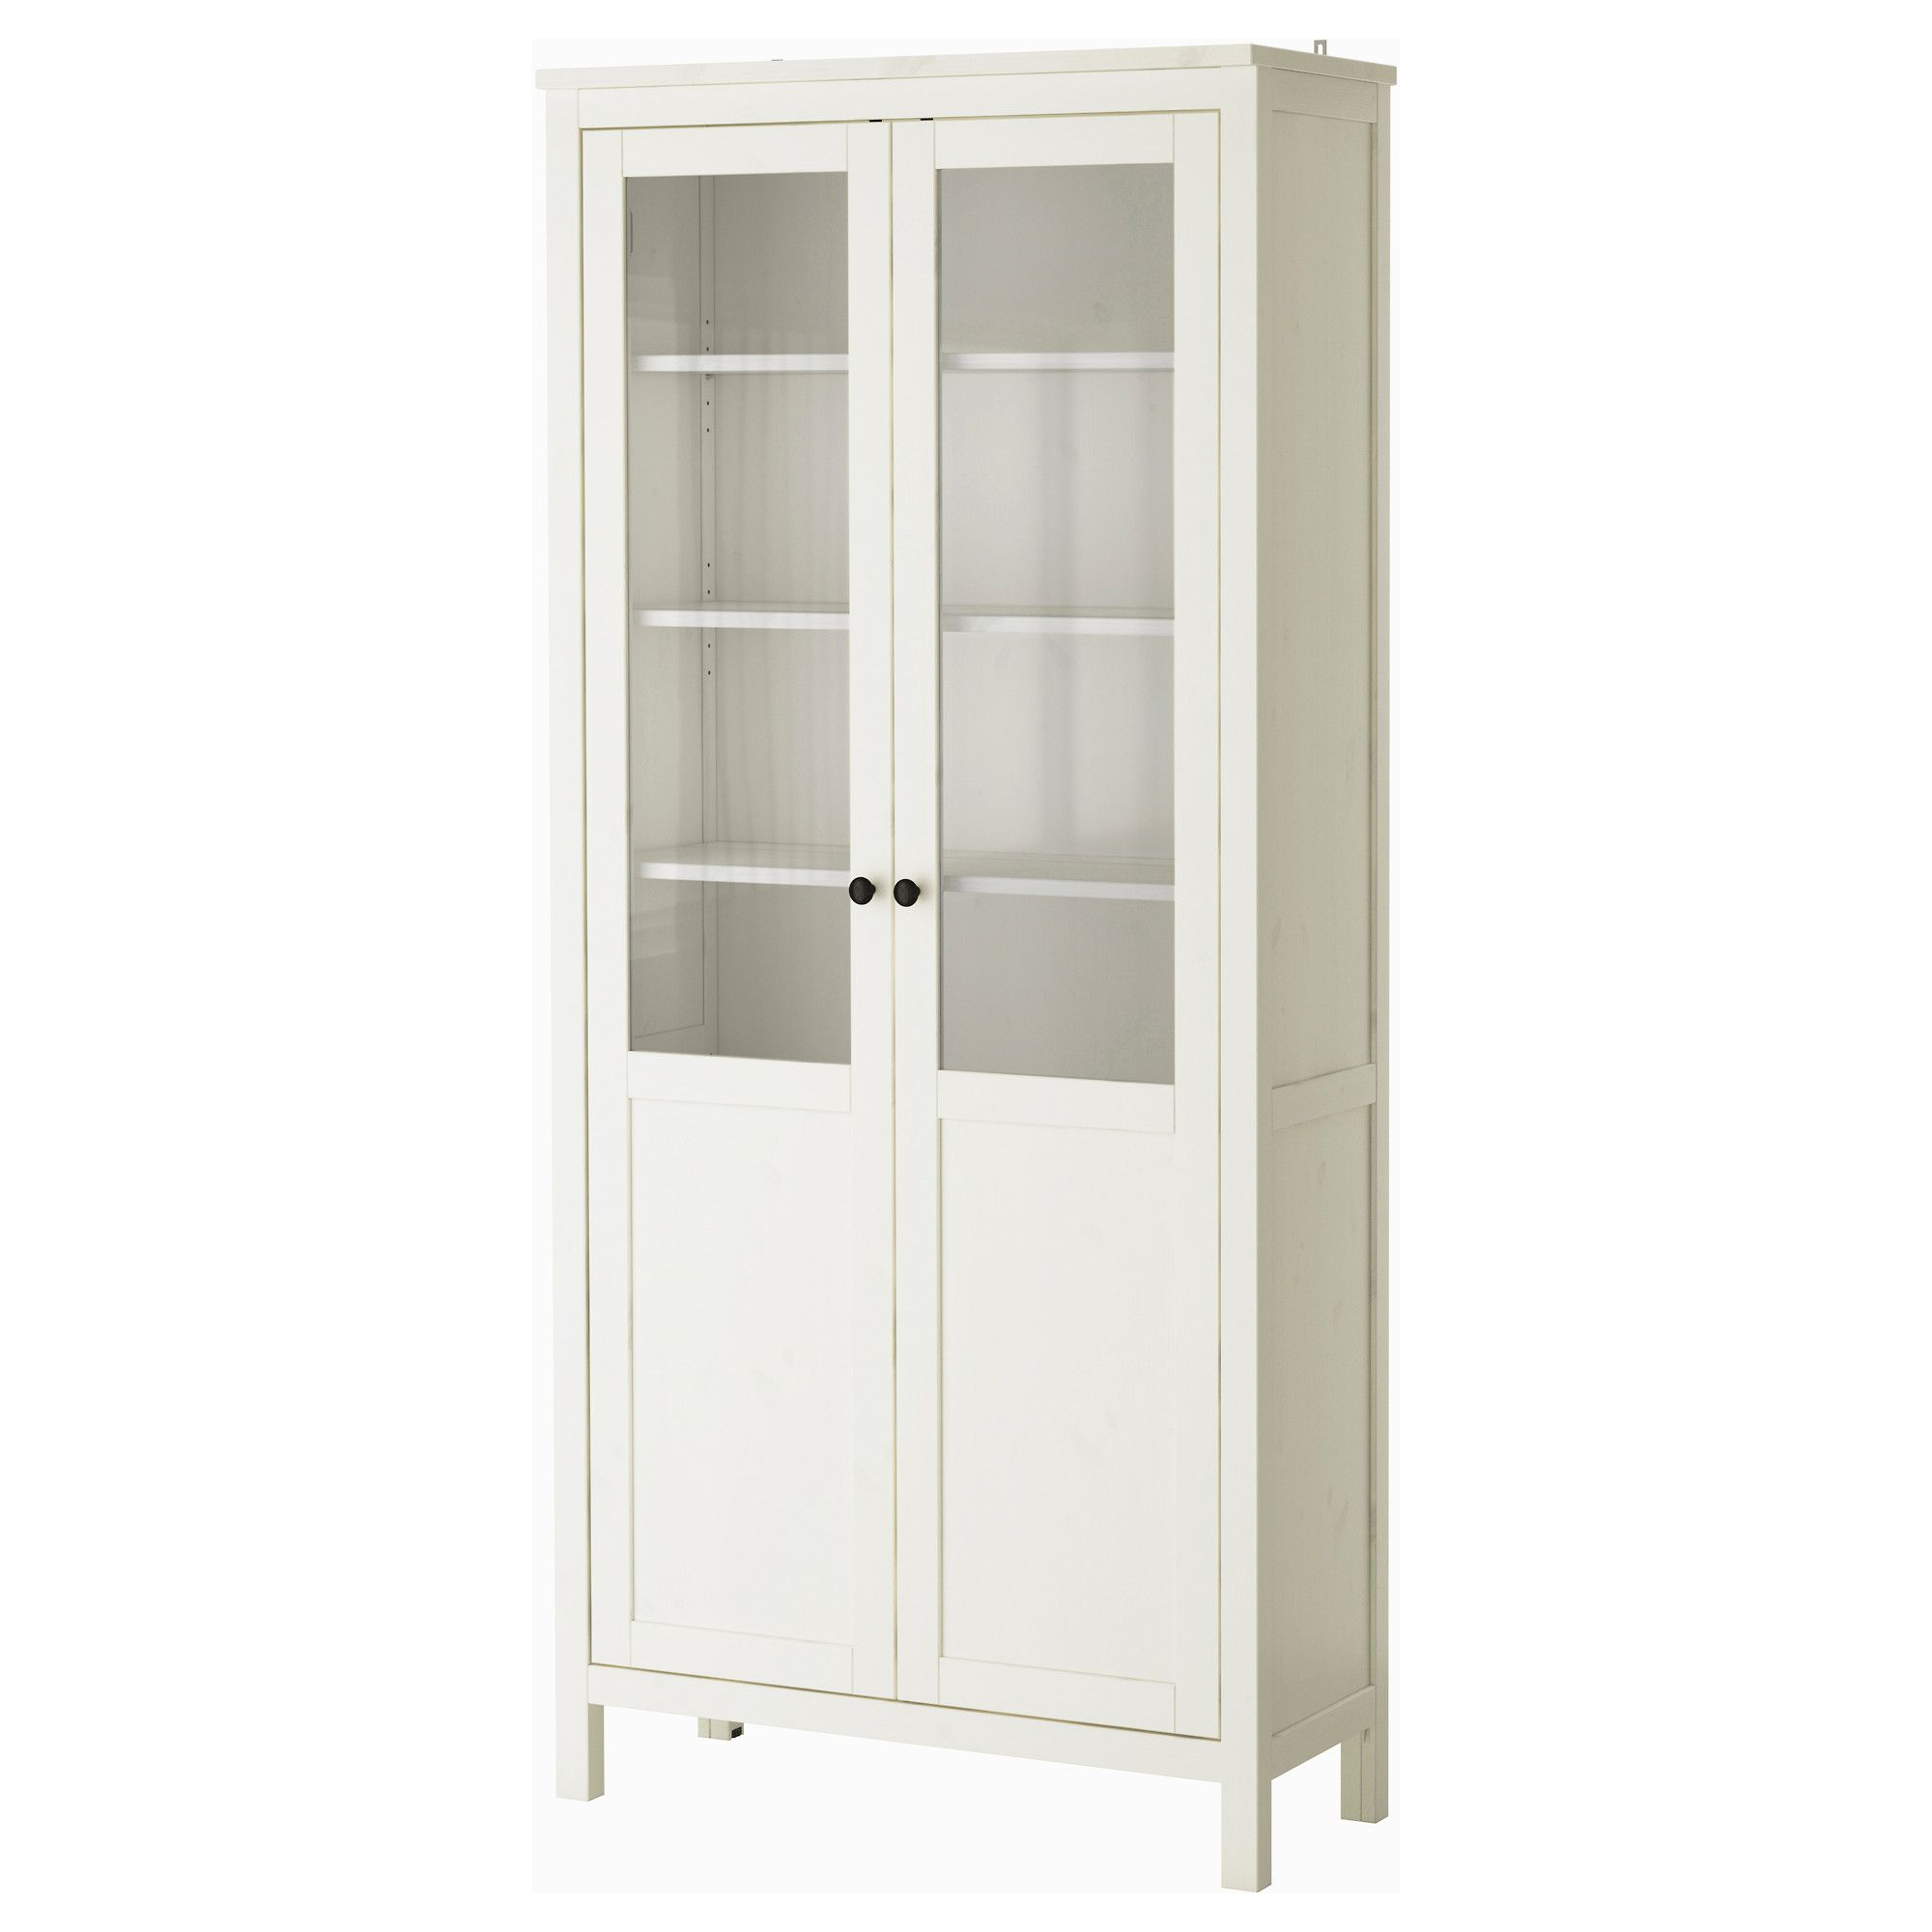 Ikea French Doors: HEMNES Cabinet With Panel/glass Door, White Stain In 2019